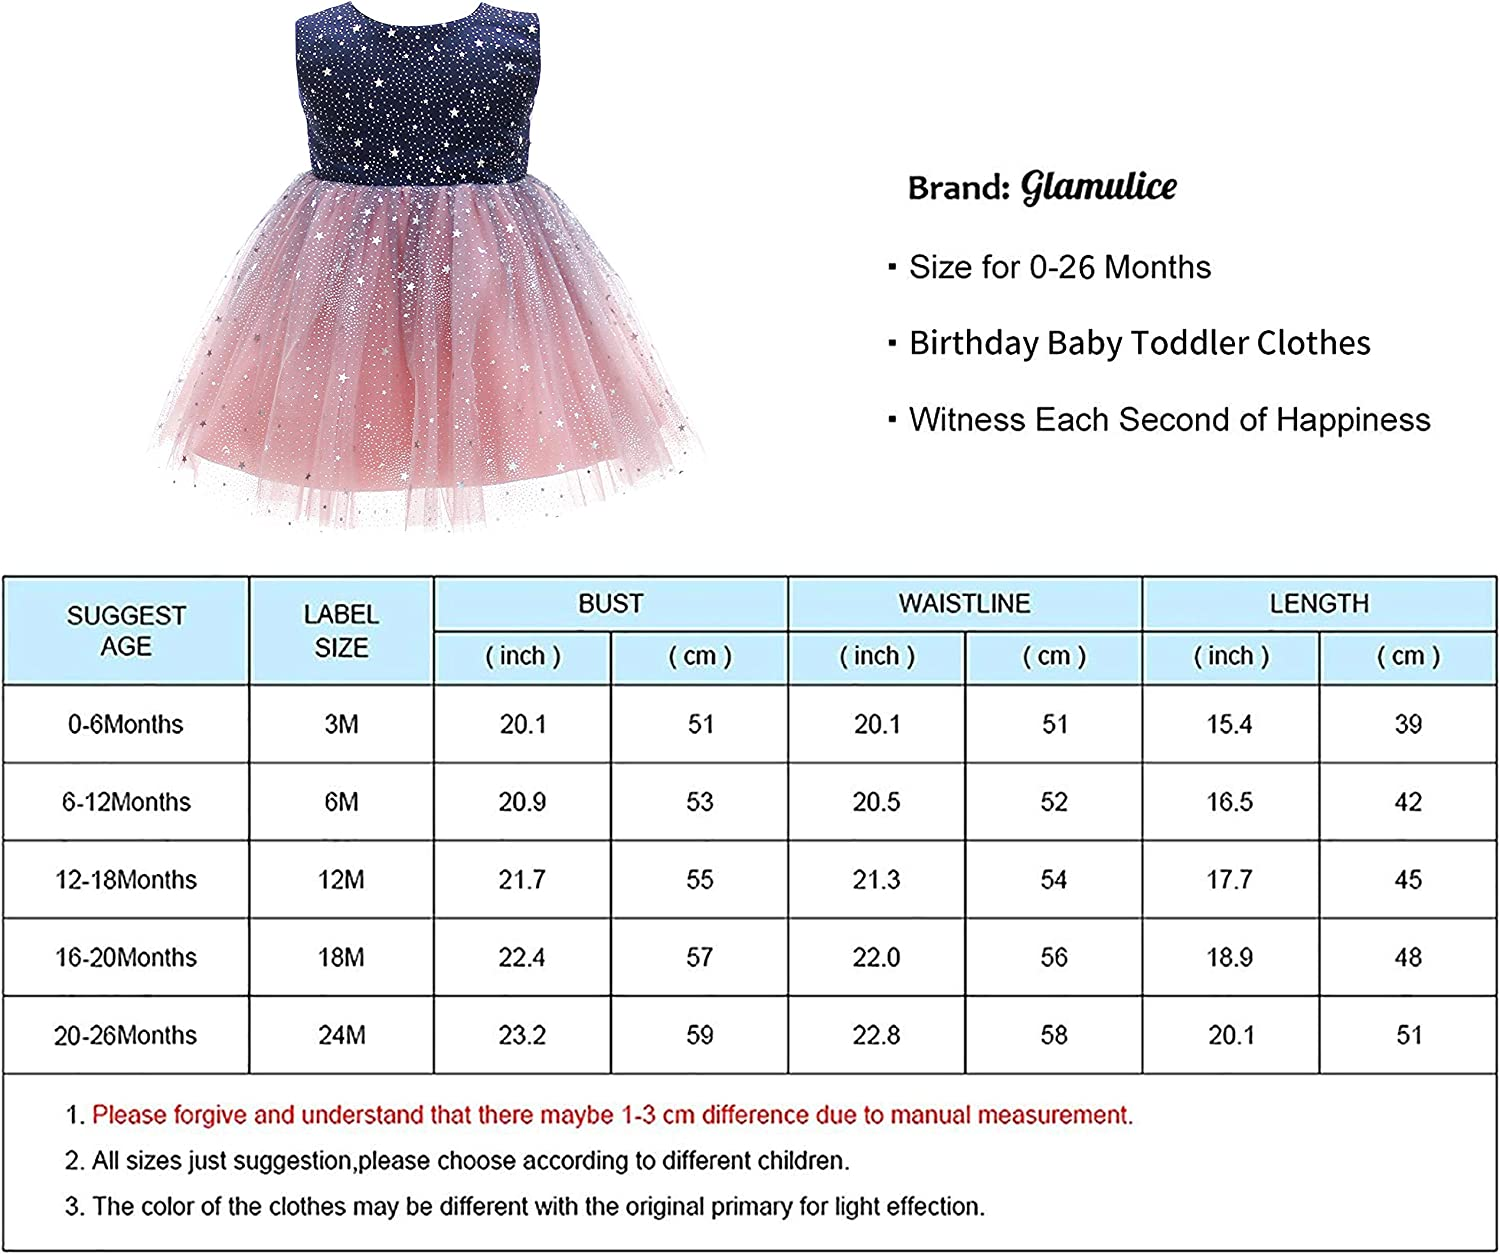 Glamulice Baby Flower Girls Sparkle Tulle Ombre Tutu Dress Baptism Christening Outfit Special Occasion Birthday Dresses